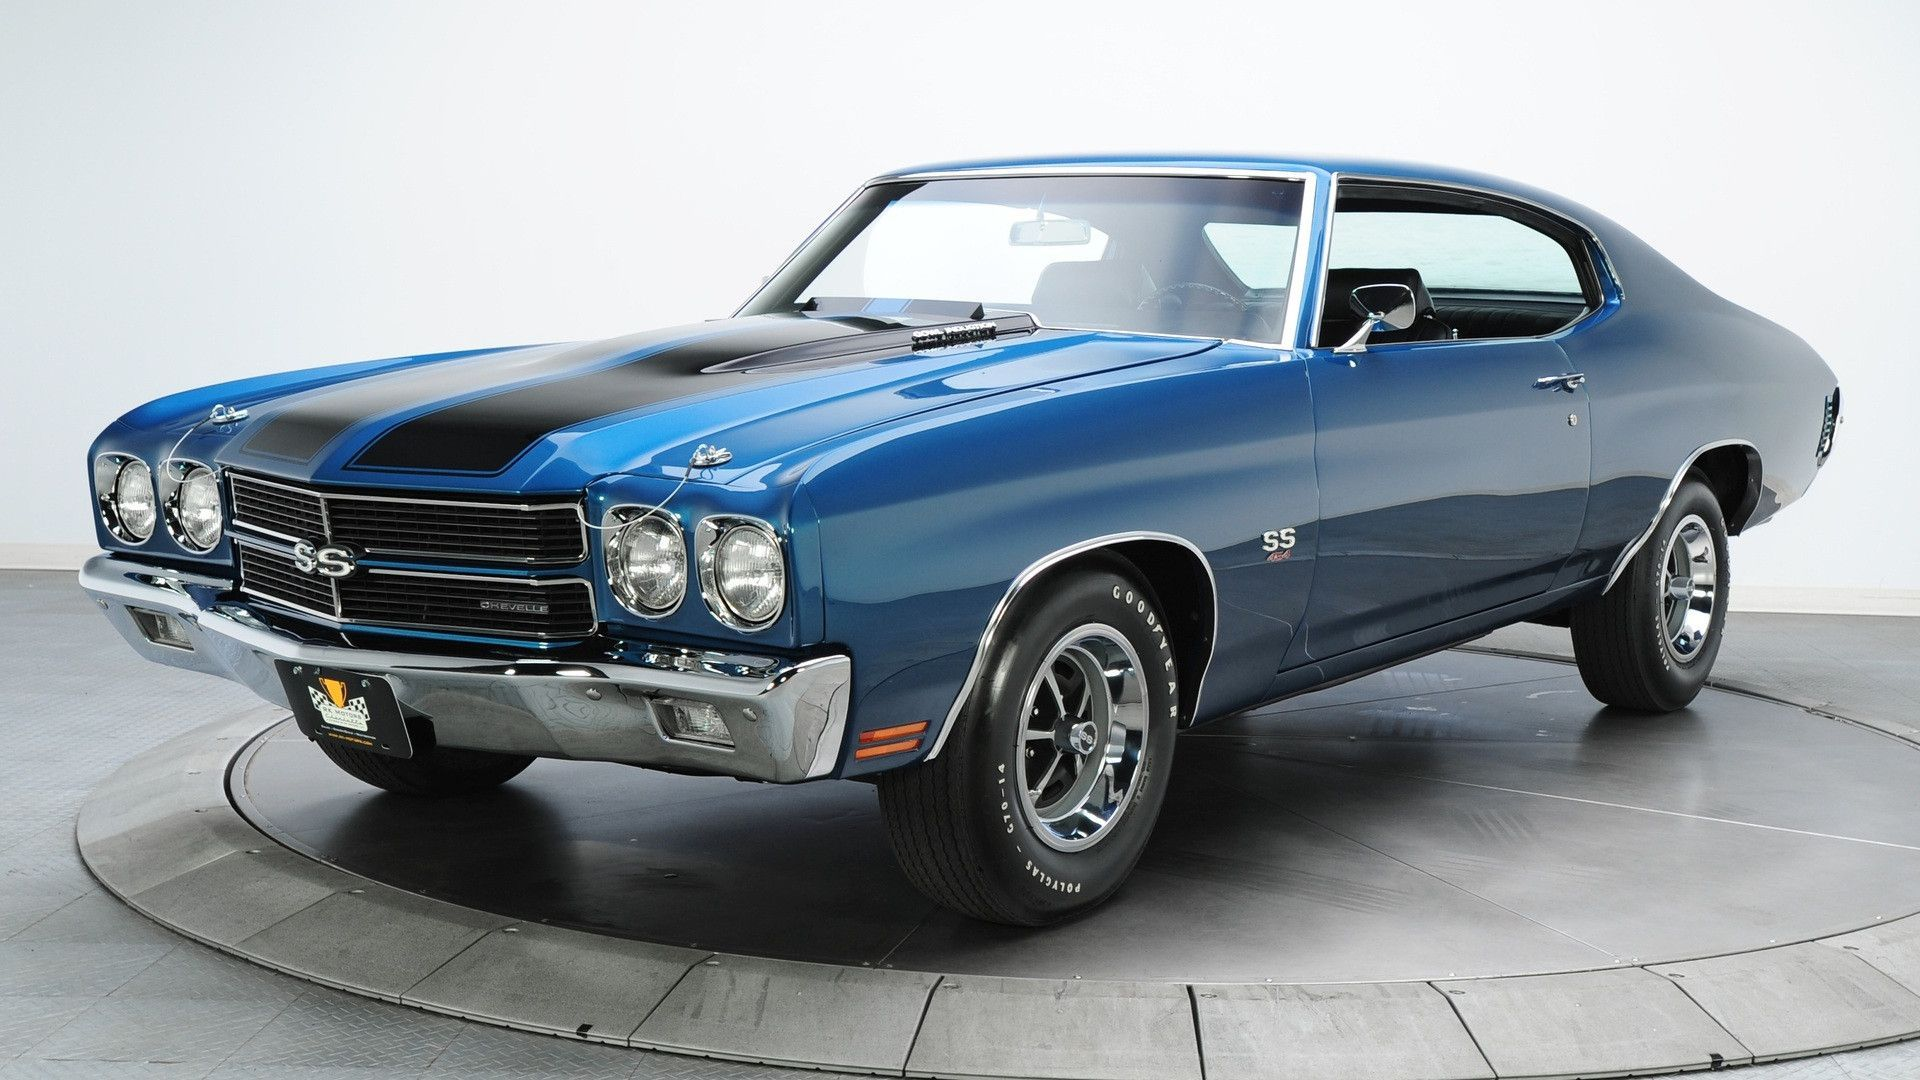 Top 10 American Muscle Cars Of All Time